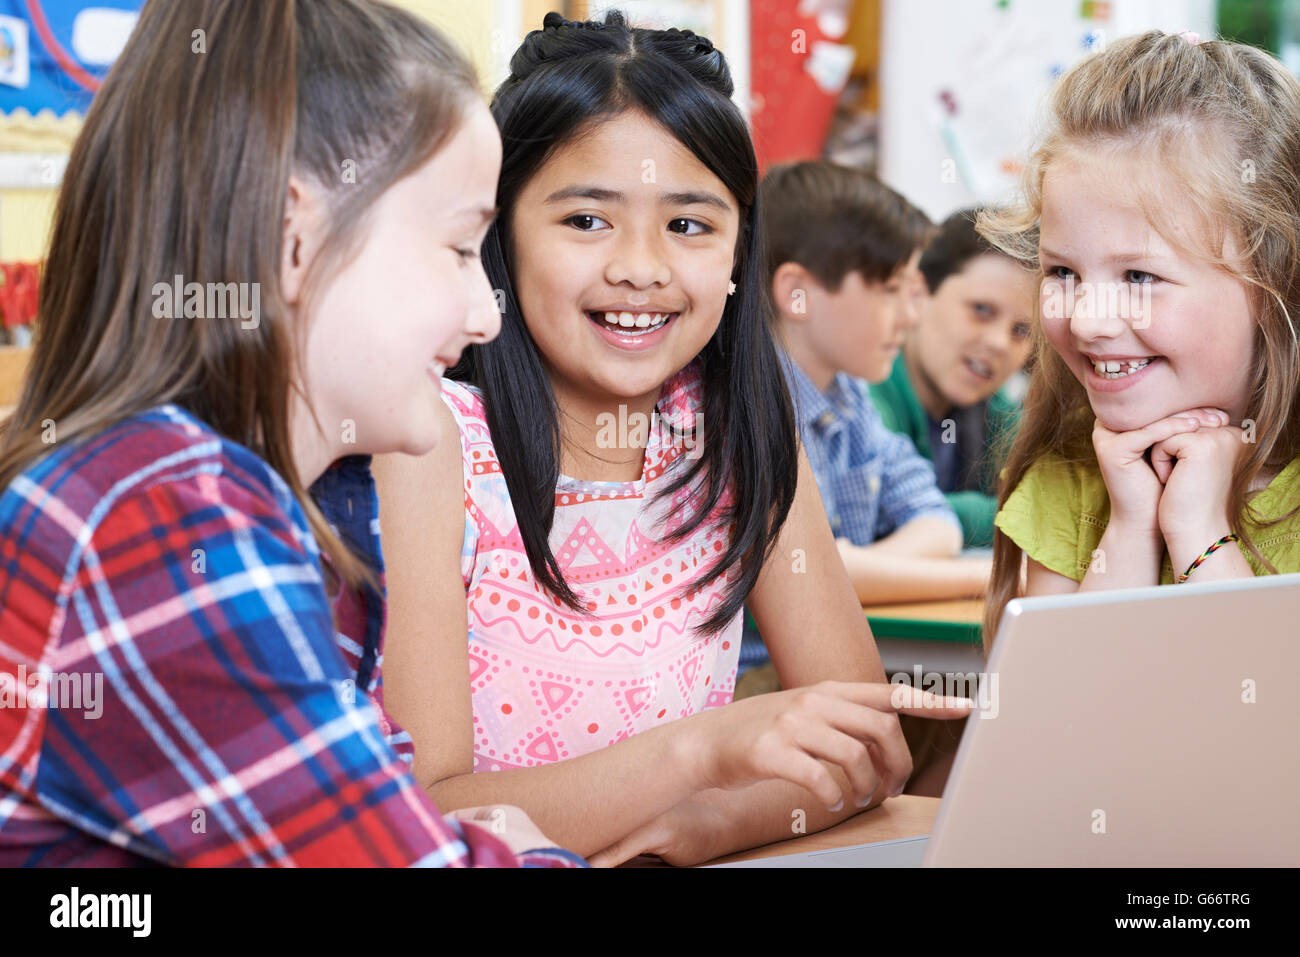 Group Of Elementary School Children Working Together In Computer Class - Stock Image